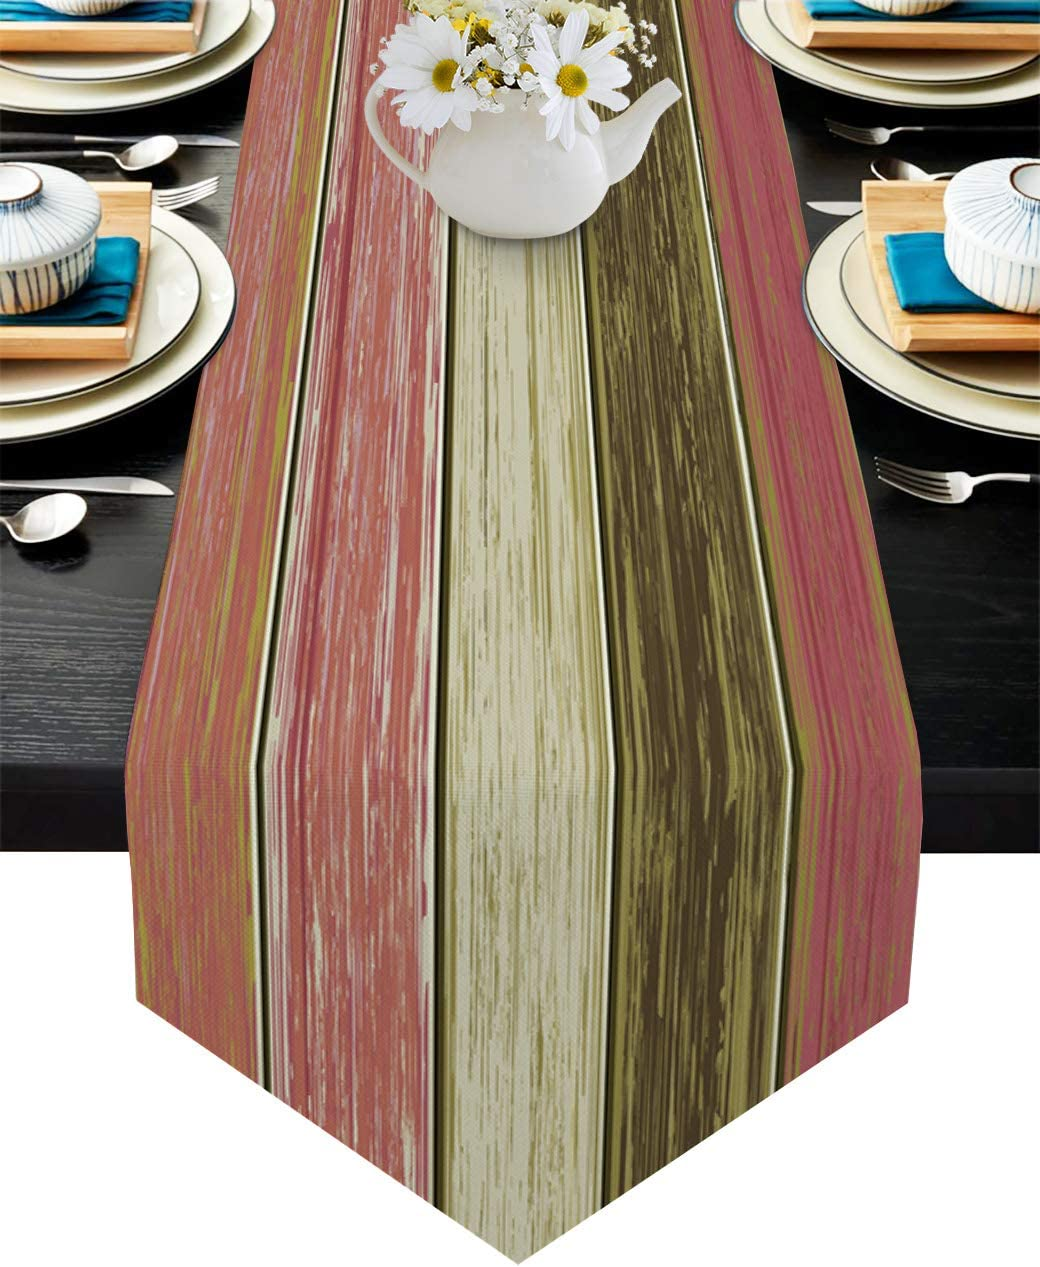 PIEPLE Retro Wooden Stripes Grain Table Runner 13 x 36 Inche Dresser Scarves, Red Tablerunner for Kitchen Coffee/Dining/End Table Bedroom Home Living Room,Scarfs Decor for Holiday Dinner